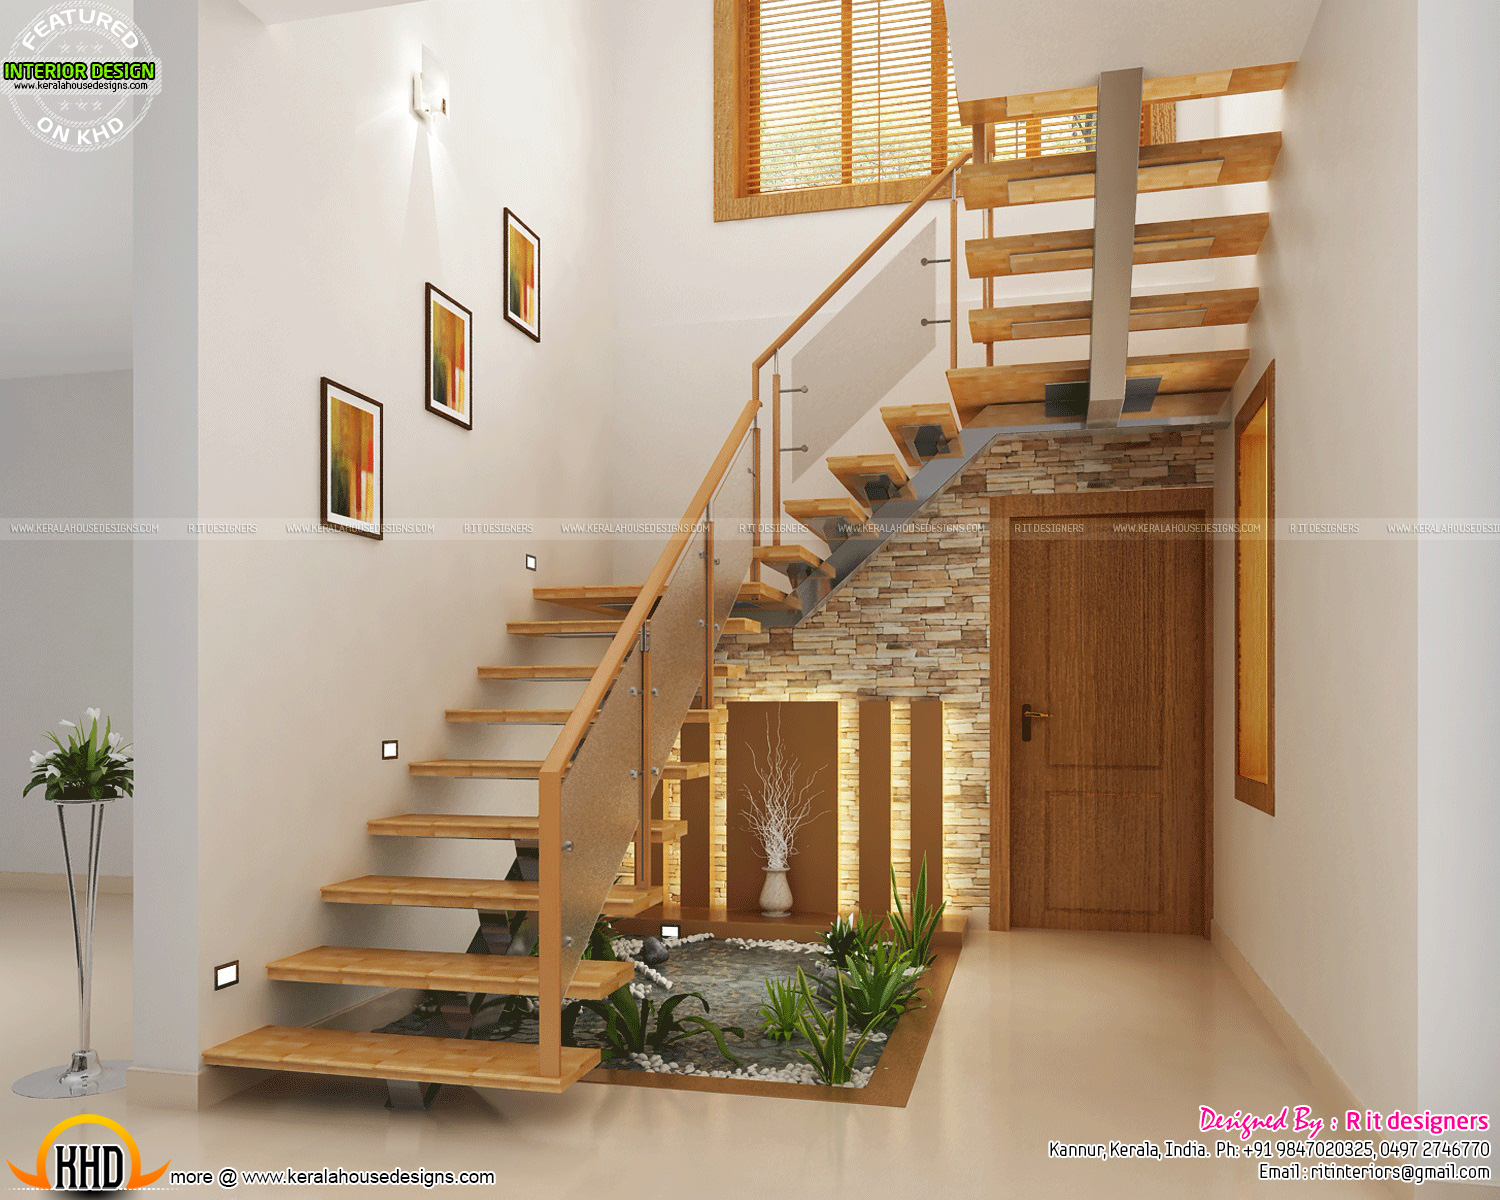 Under Stair Design Wooden Stair Kitchen And Living Kerala Home Design And Floor Plans